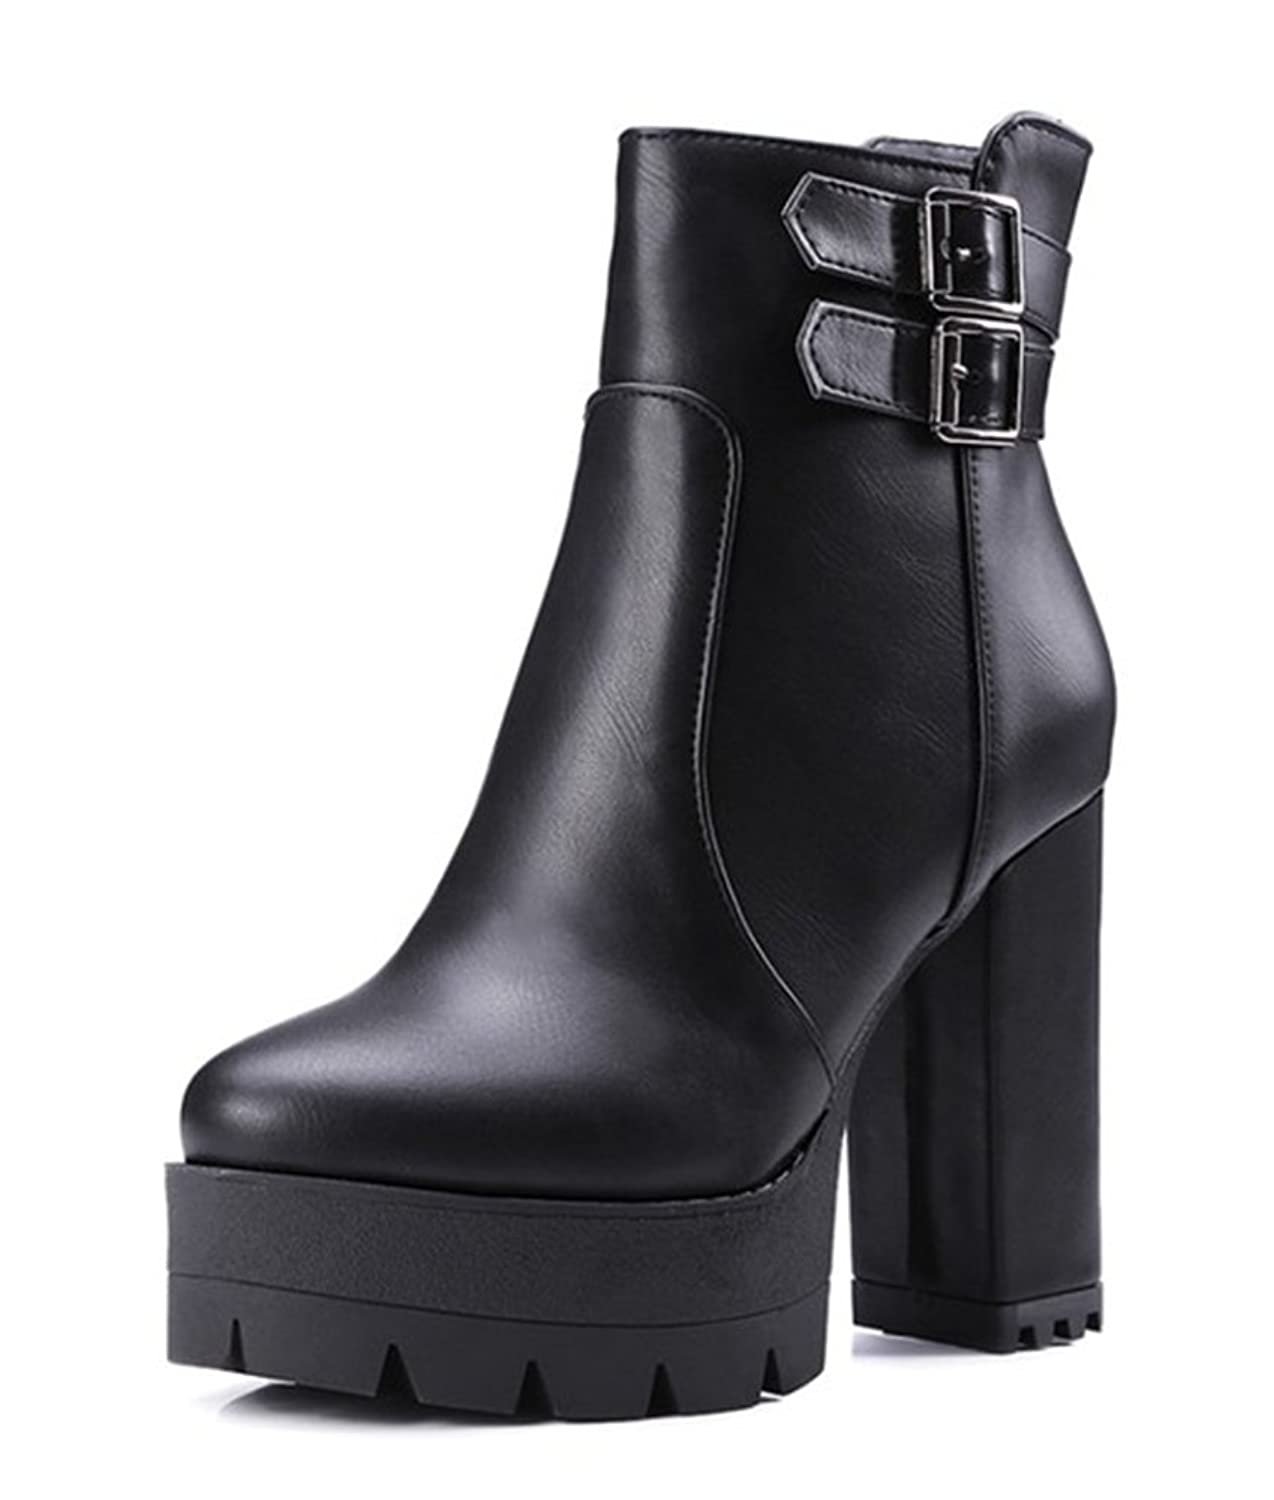 Aisun Women's Trendy Round Toe Buckle Strap Side Zipper Dress Platform Stacked High Heel Ankle Boots Shoes